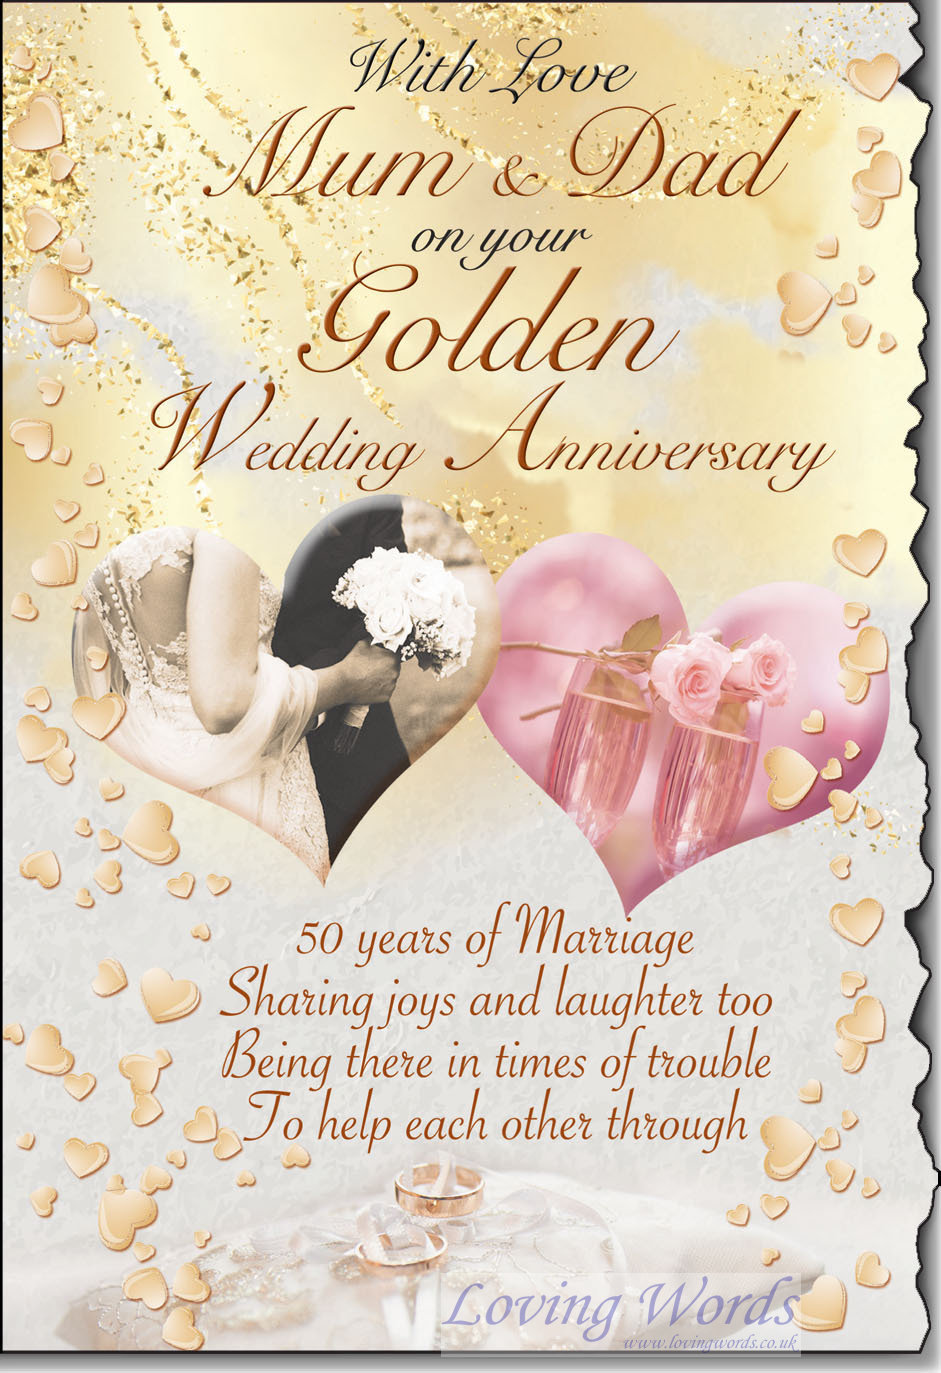 Golden wedding mum dad greeting cards by loving words personalised greeting cards m4hsunfo